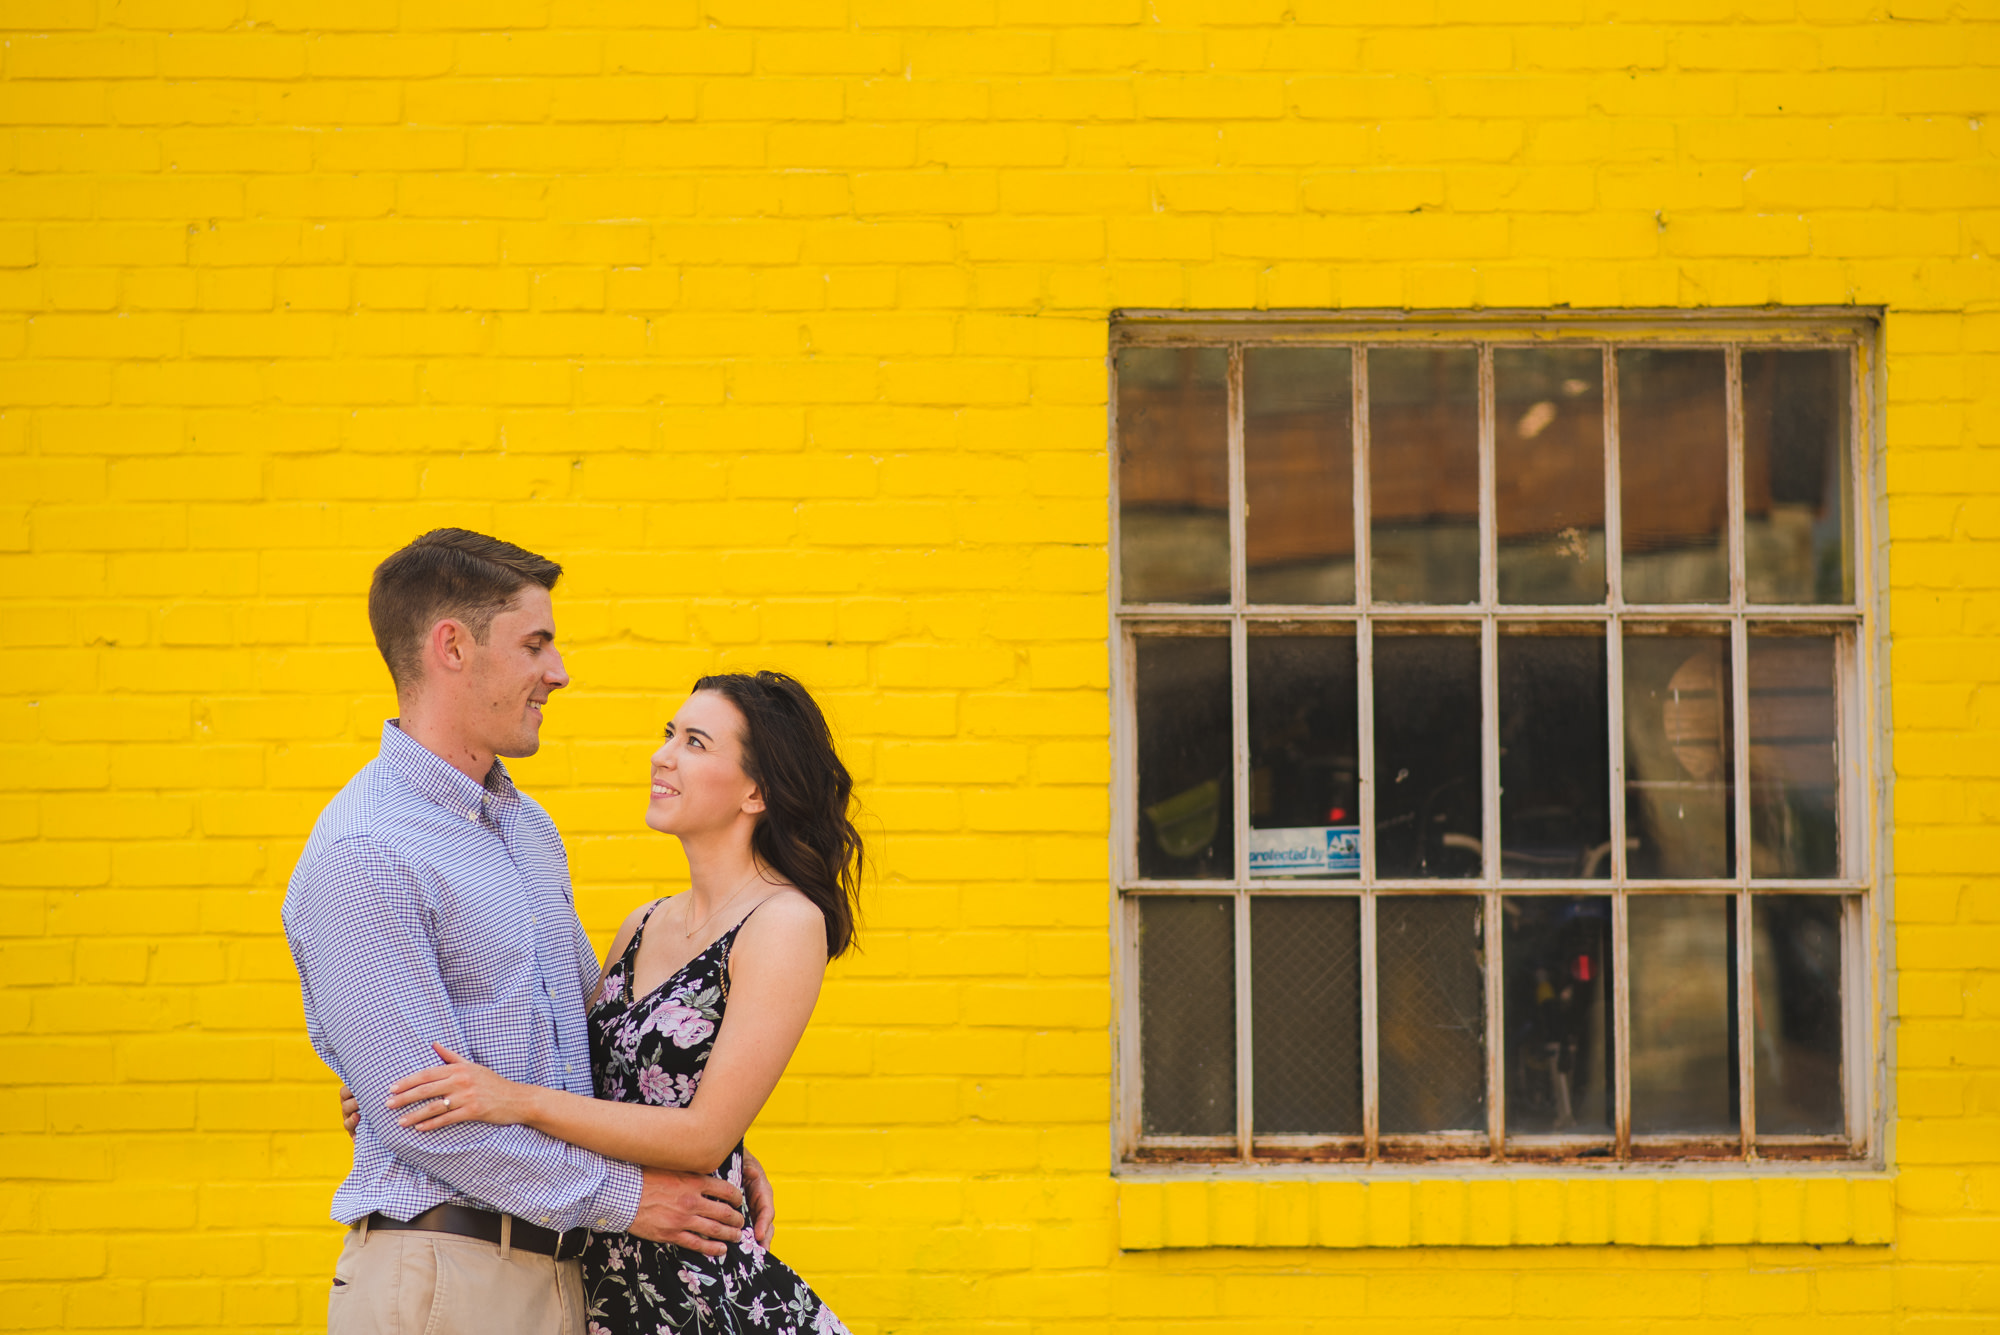 Alexandria-Old-Town-Elegant-Engagement-Pictures-by-Gabriele-Stonyte-Photography-7.jpg